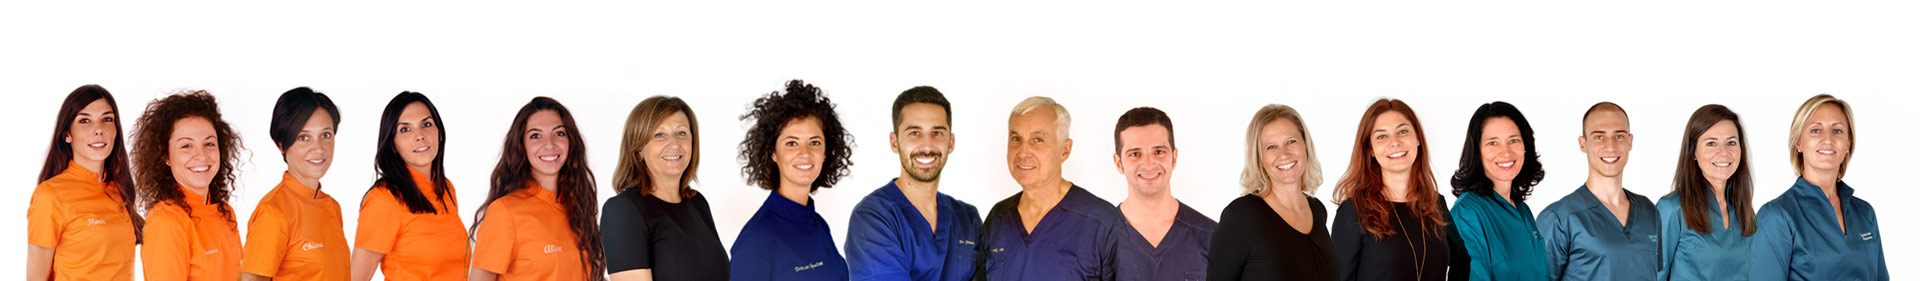 Team | Dentista a Montagnana | Clinica dentale Mantoan